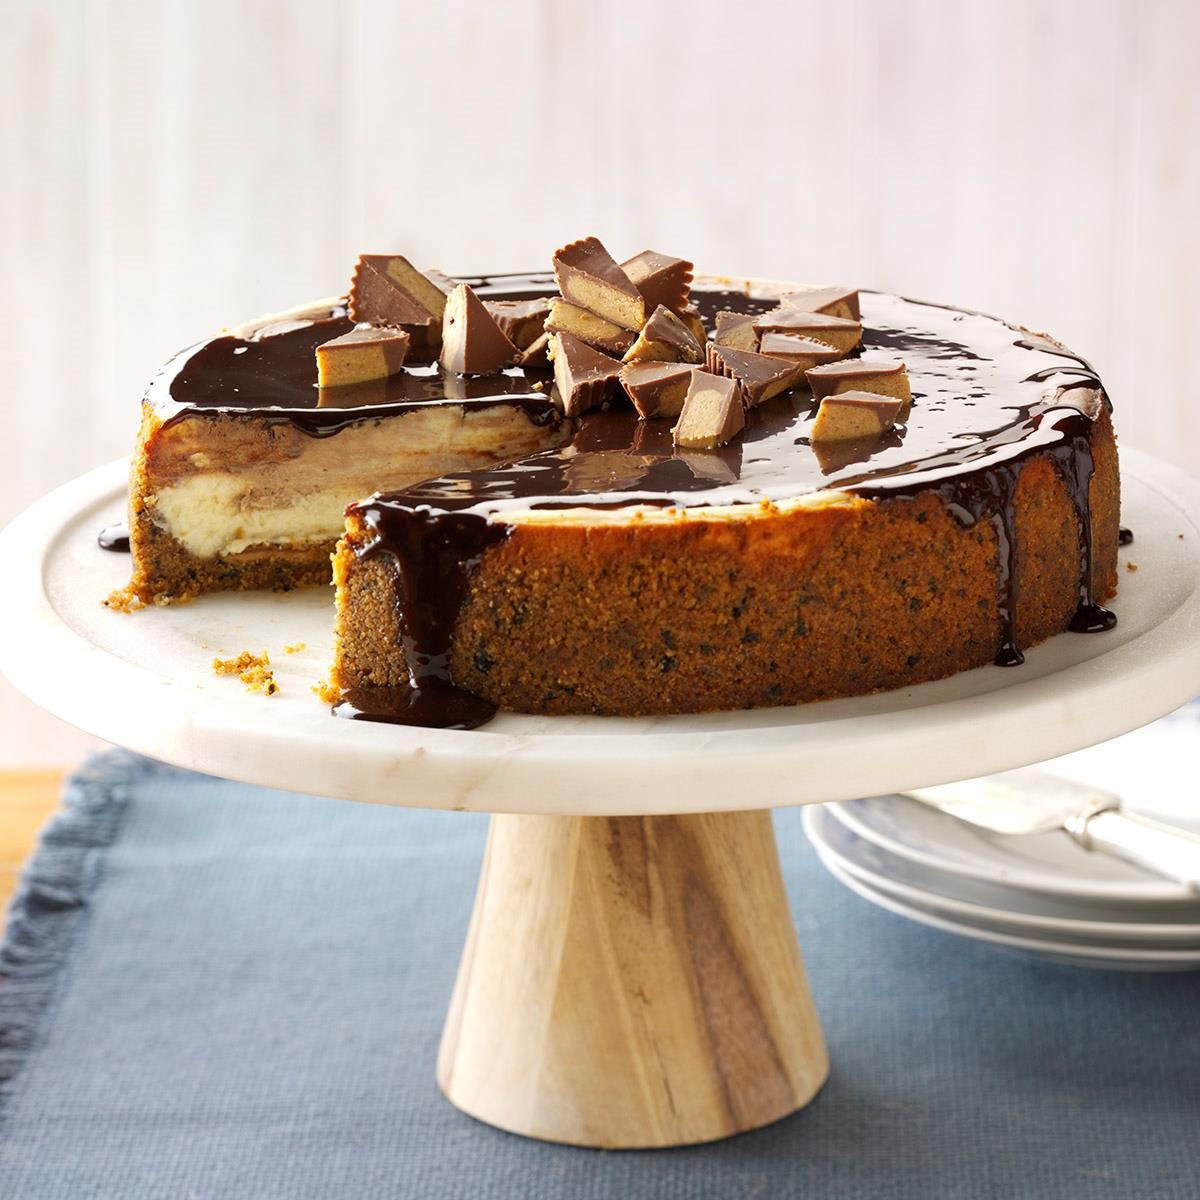 Inspired by: The Cheesecake Factory Reese's Peanut Butter Chocolate Cake Cheesecake